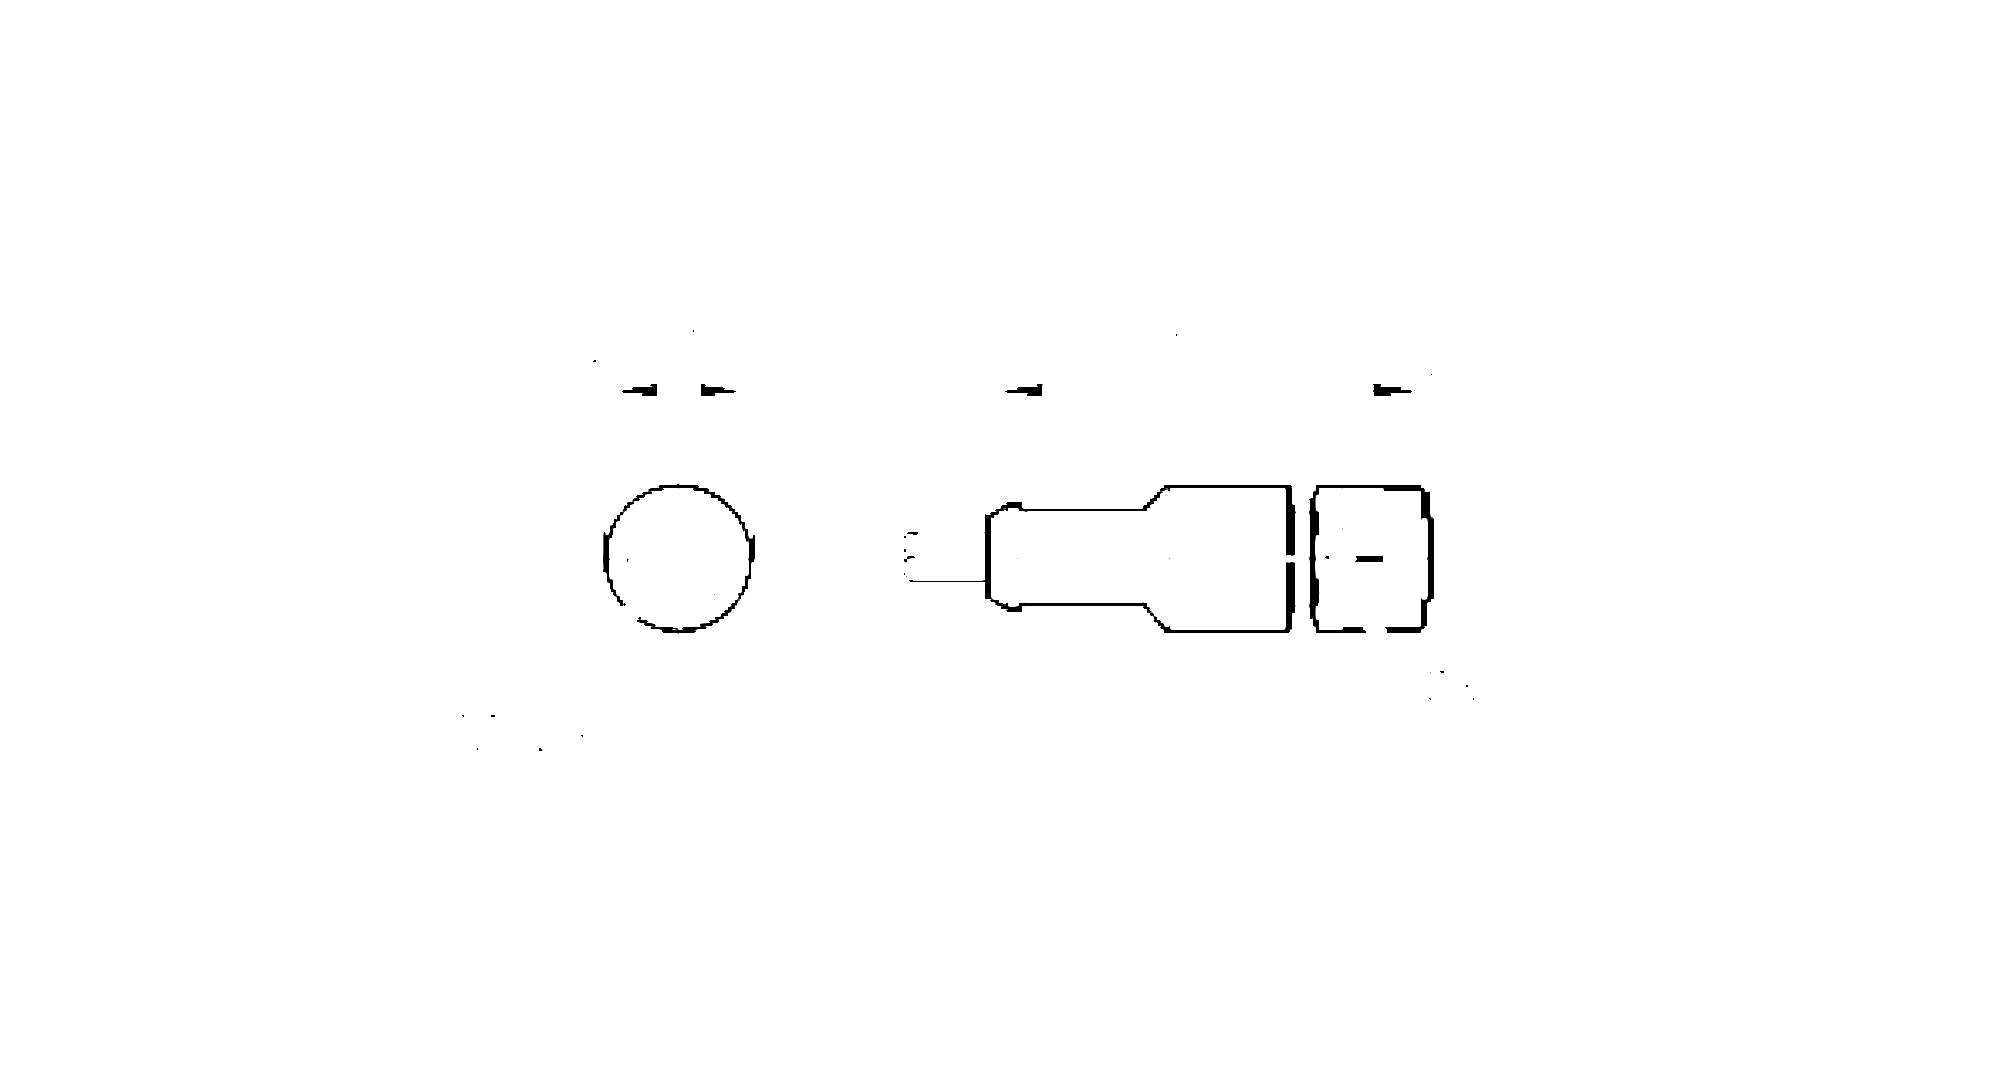 e12502 - connecting cable with socket